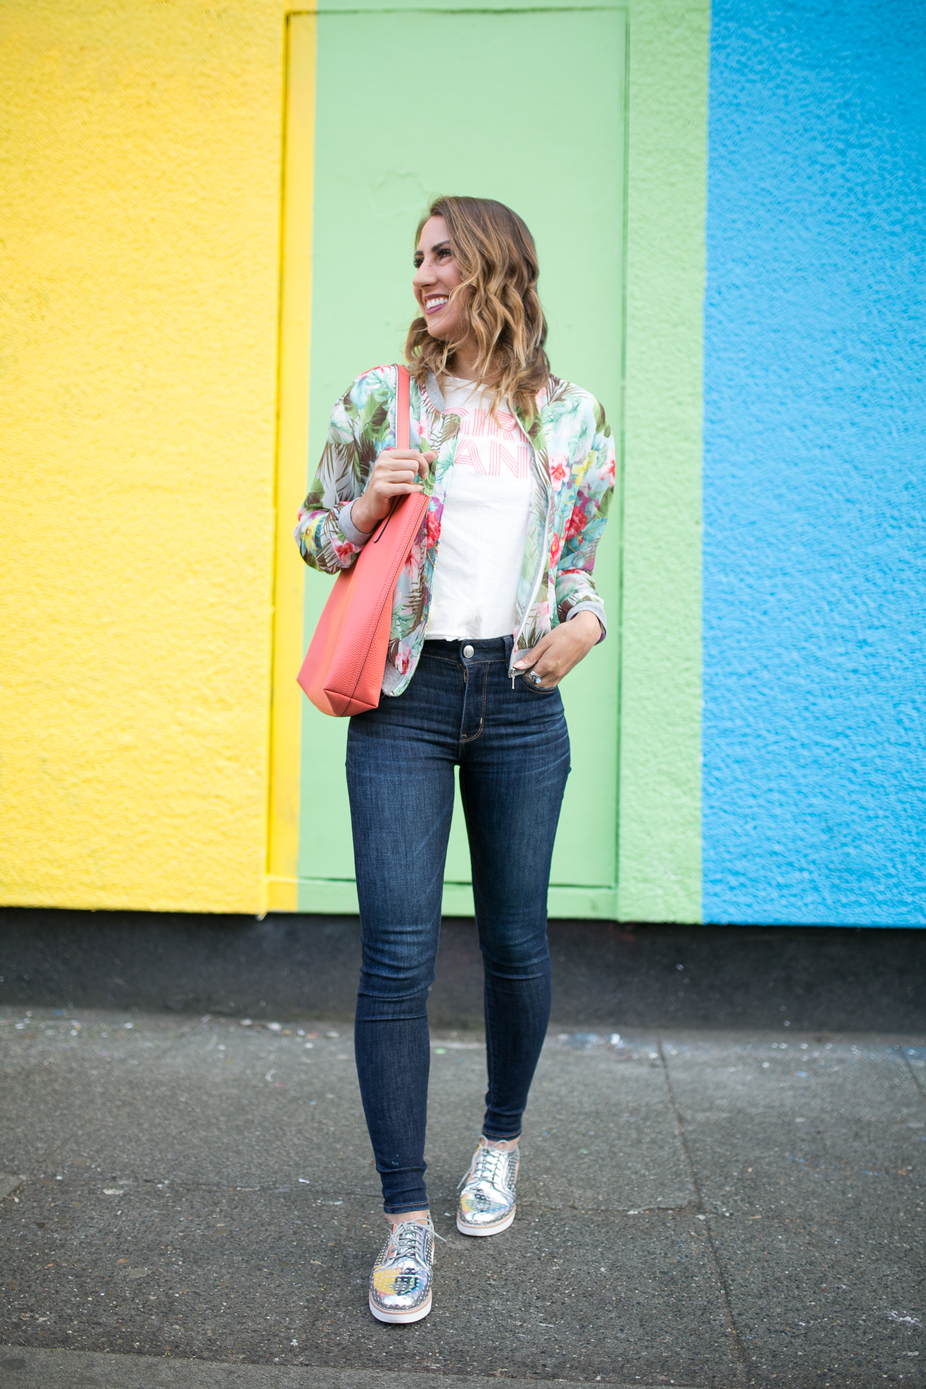 seattle fashion blogger, seattle blogger, bomber jacket, graphic t-shirt